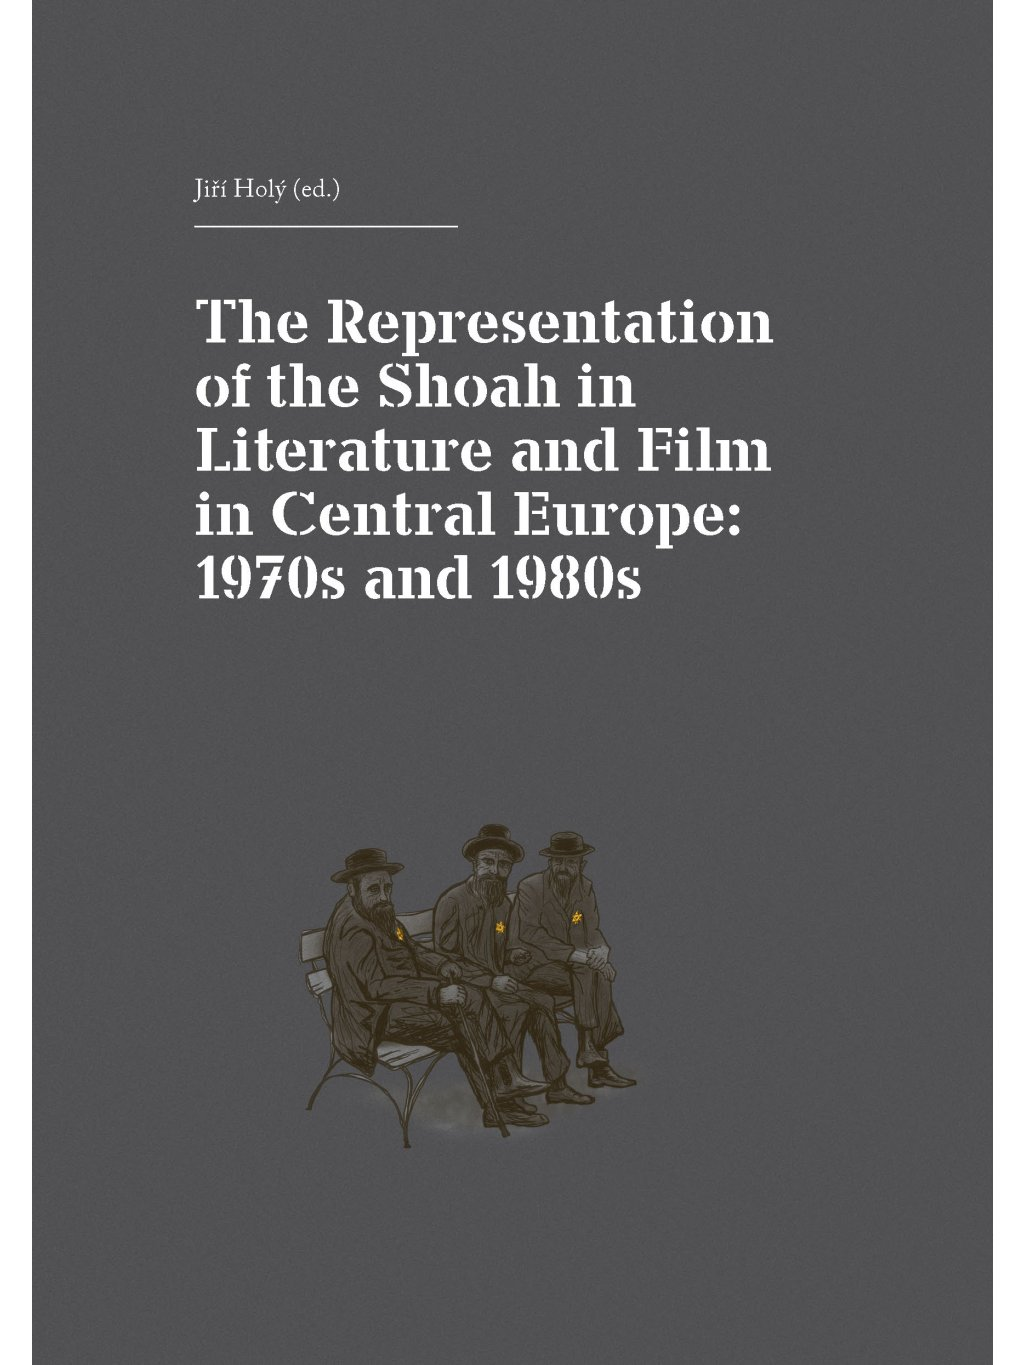 The Representation of the Shoah in Literature and Film in Central Europe: 1970s and 1980s